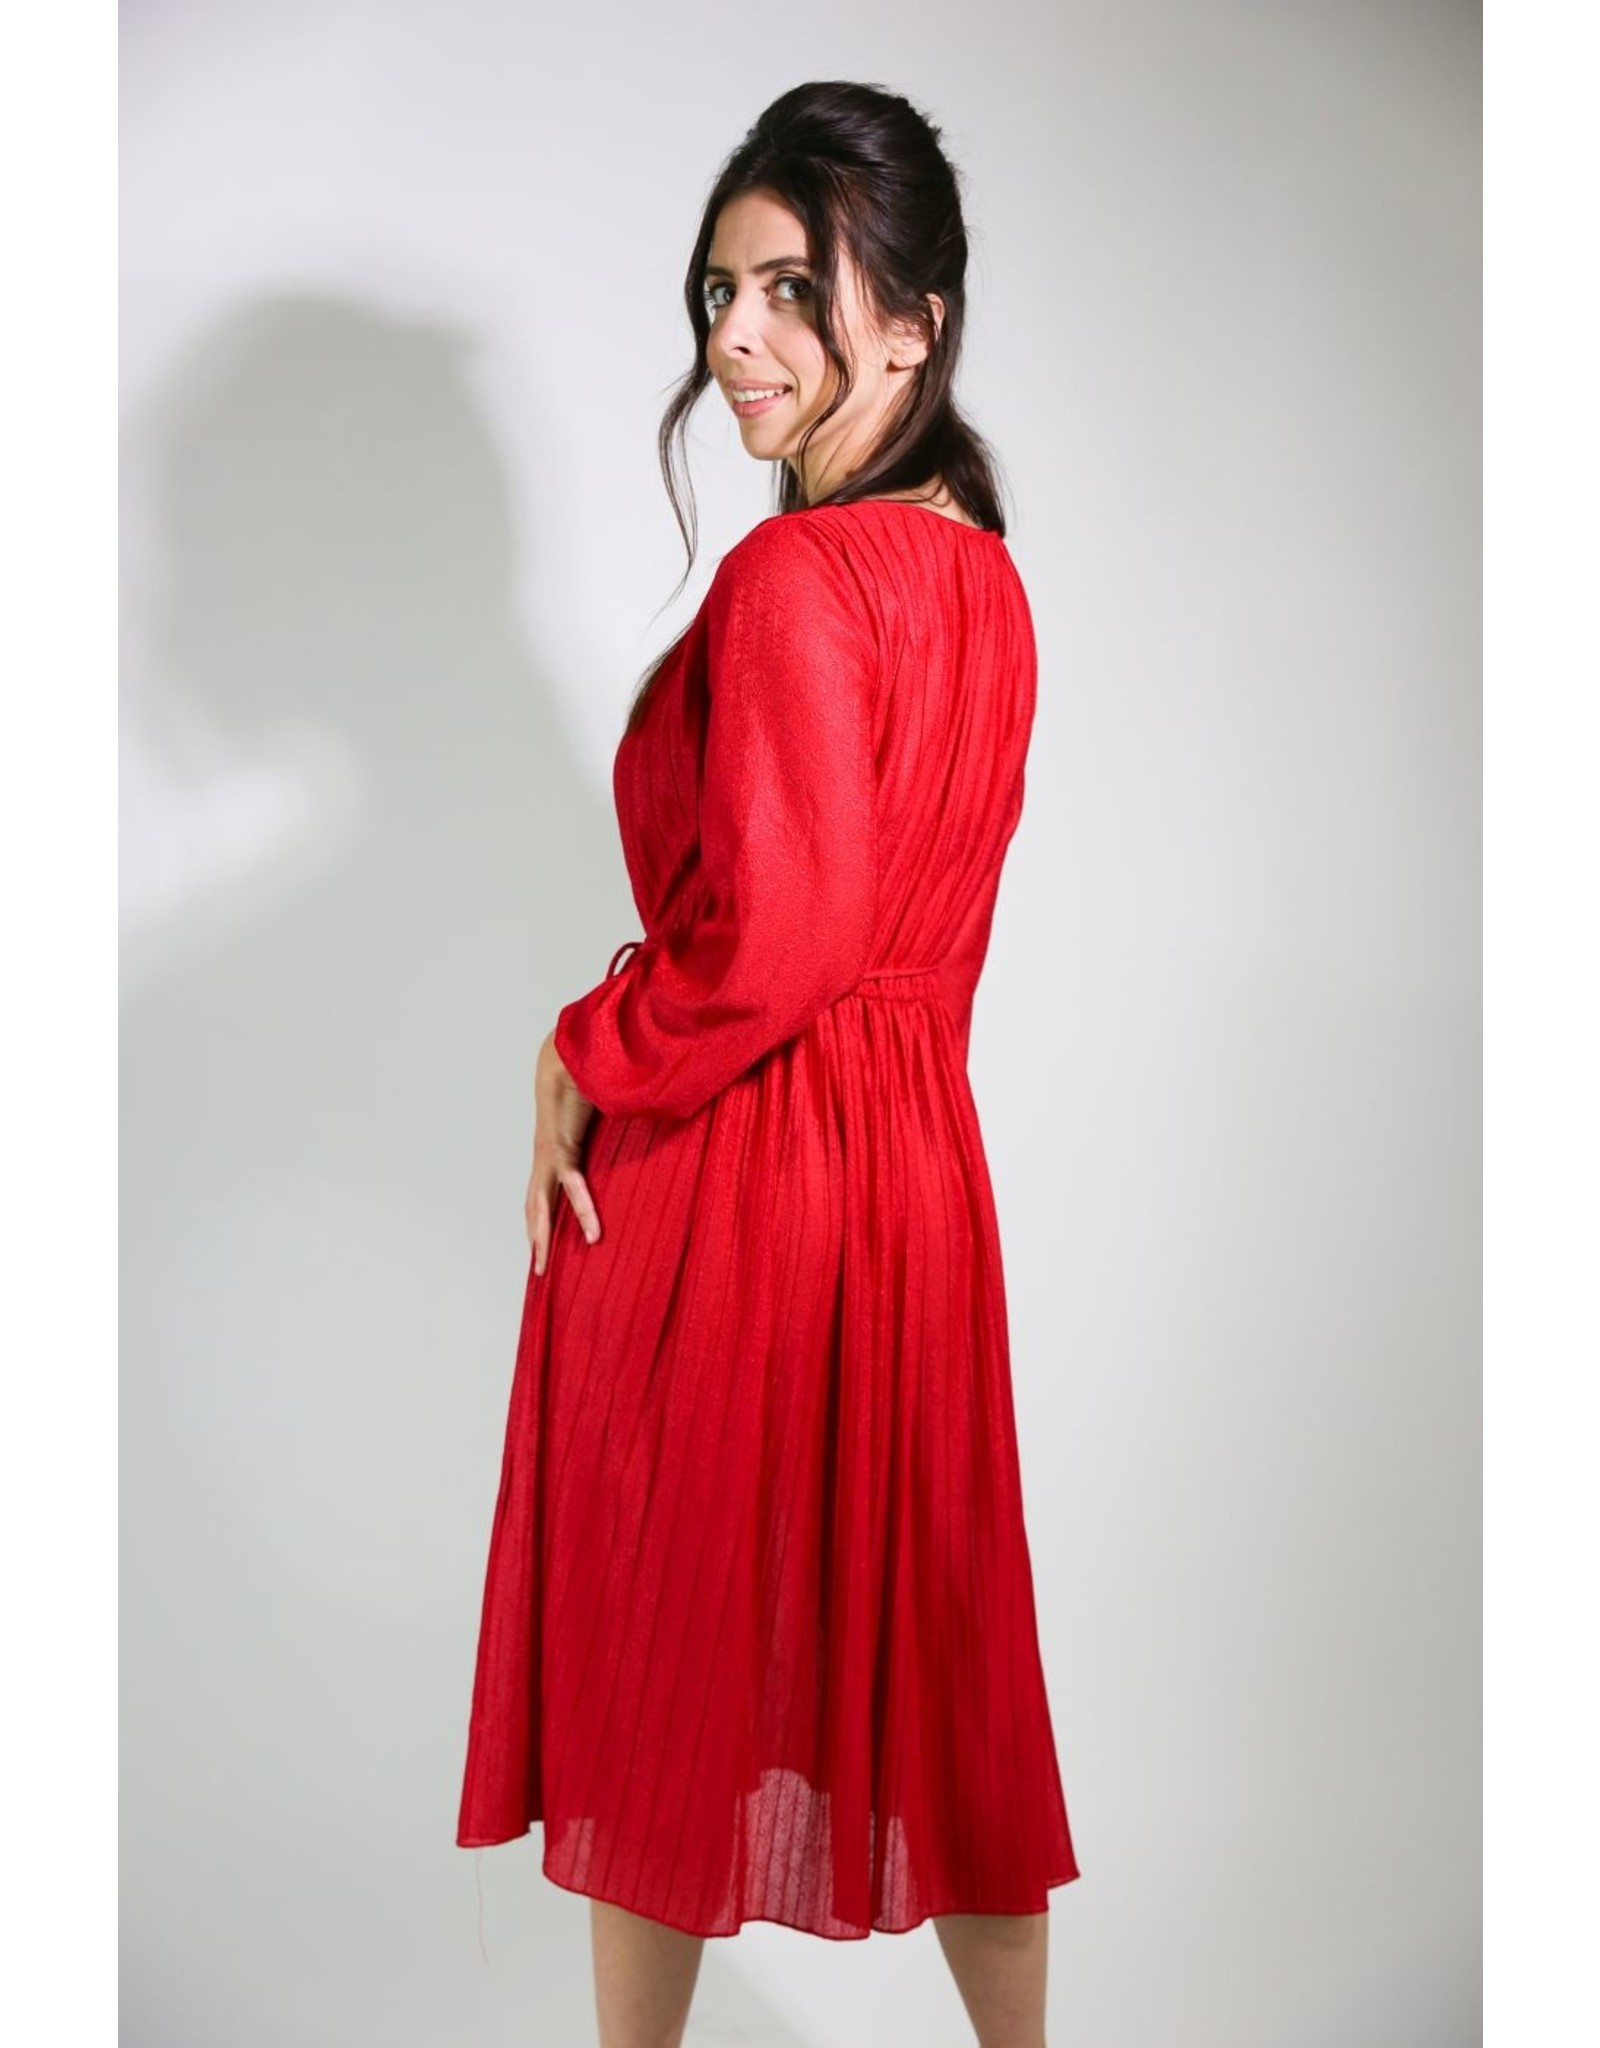 1970's Red Shimmery Midi Dress